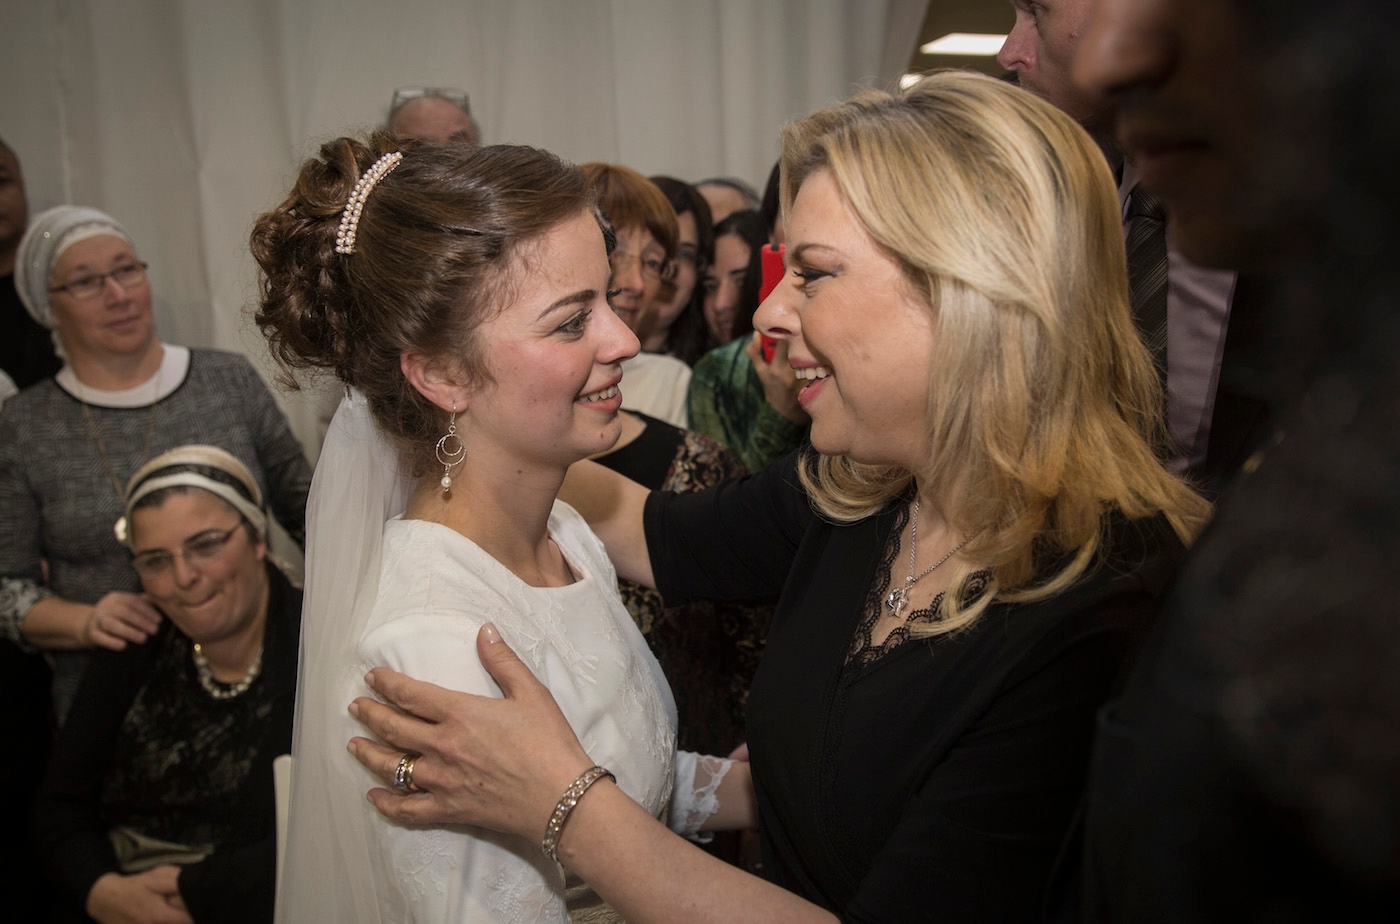 Sara Netanyahu, the wife of Israeli Prime Minister Benjamin Netanyahu, celebrating with Sarah Litman at her wedding in Jerusalem, Nov. 26, 2015. (Hadas Parush/Flash90)